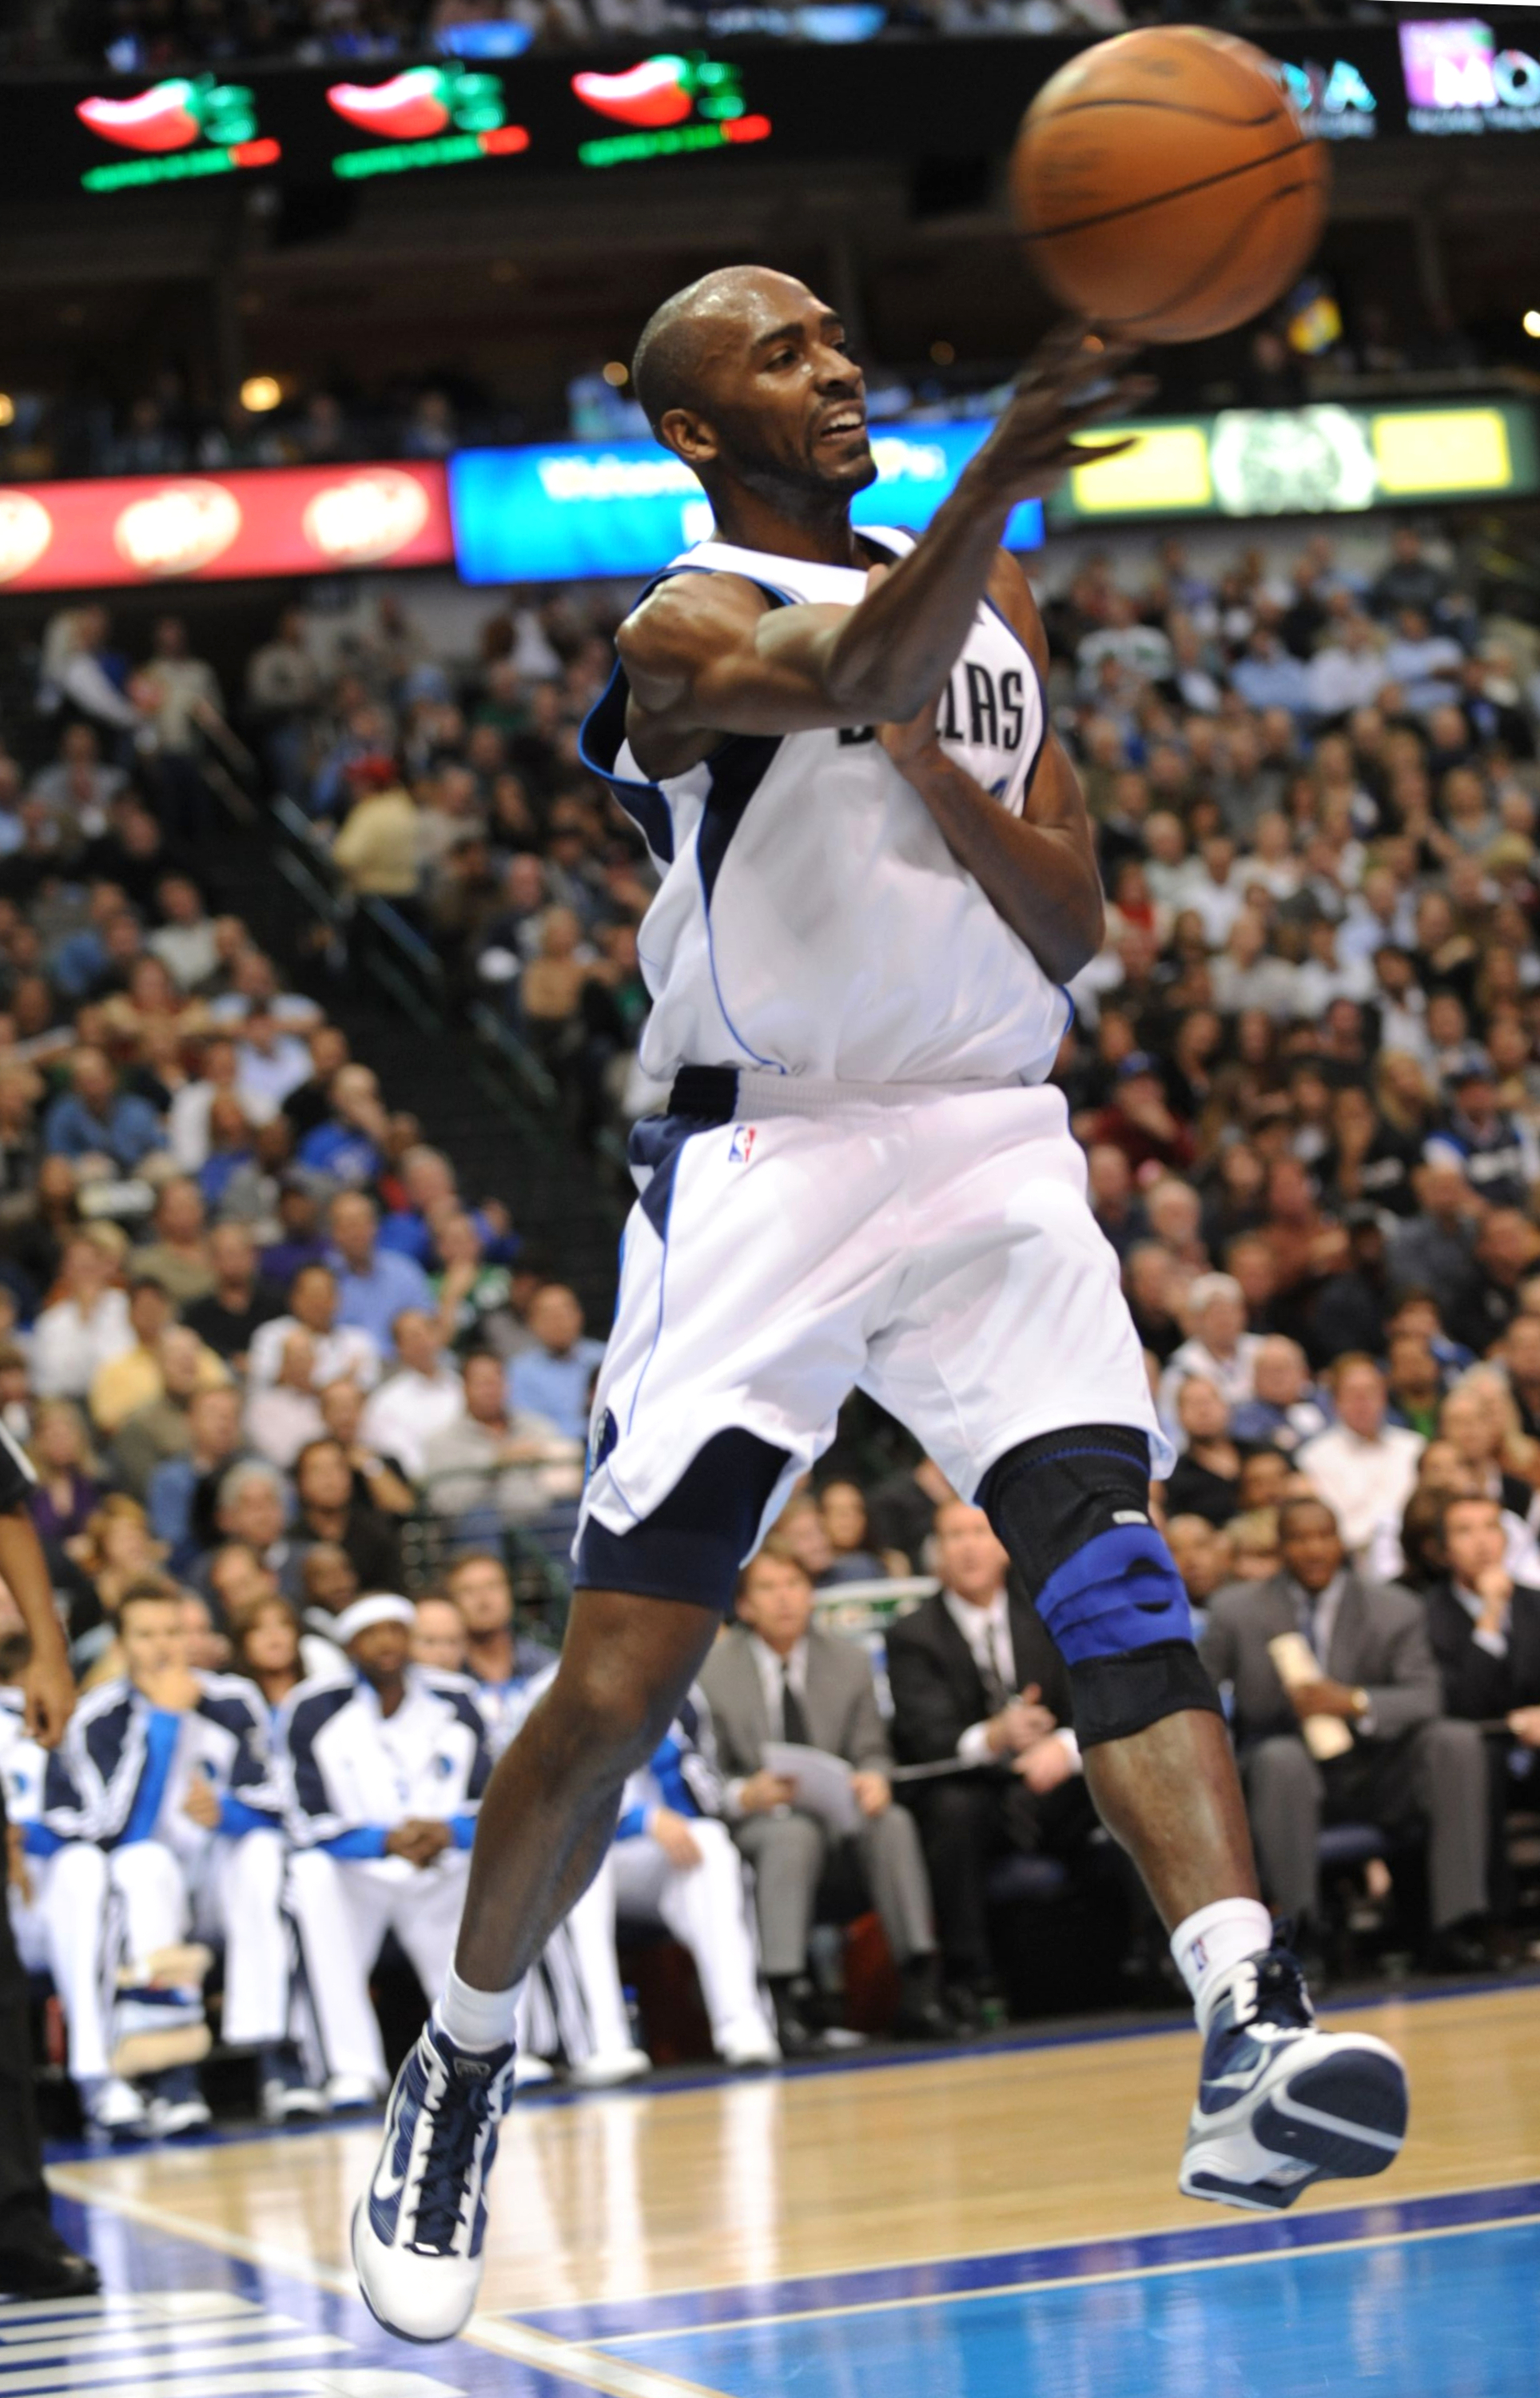 DALLAS - NOVEMBER 18:  Quinton Ross #6 of the Dallas Mavericks makes a pass along the baseline against the San Antonio Spurs at American Airlines Center on November 18, 2009 in Dallas, Texas. NOTE TO USER: User expressly acknowledges and agrees that, by d